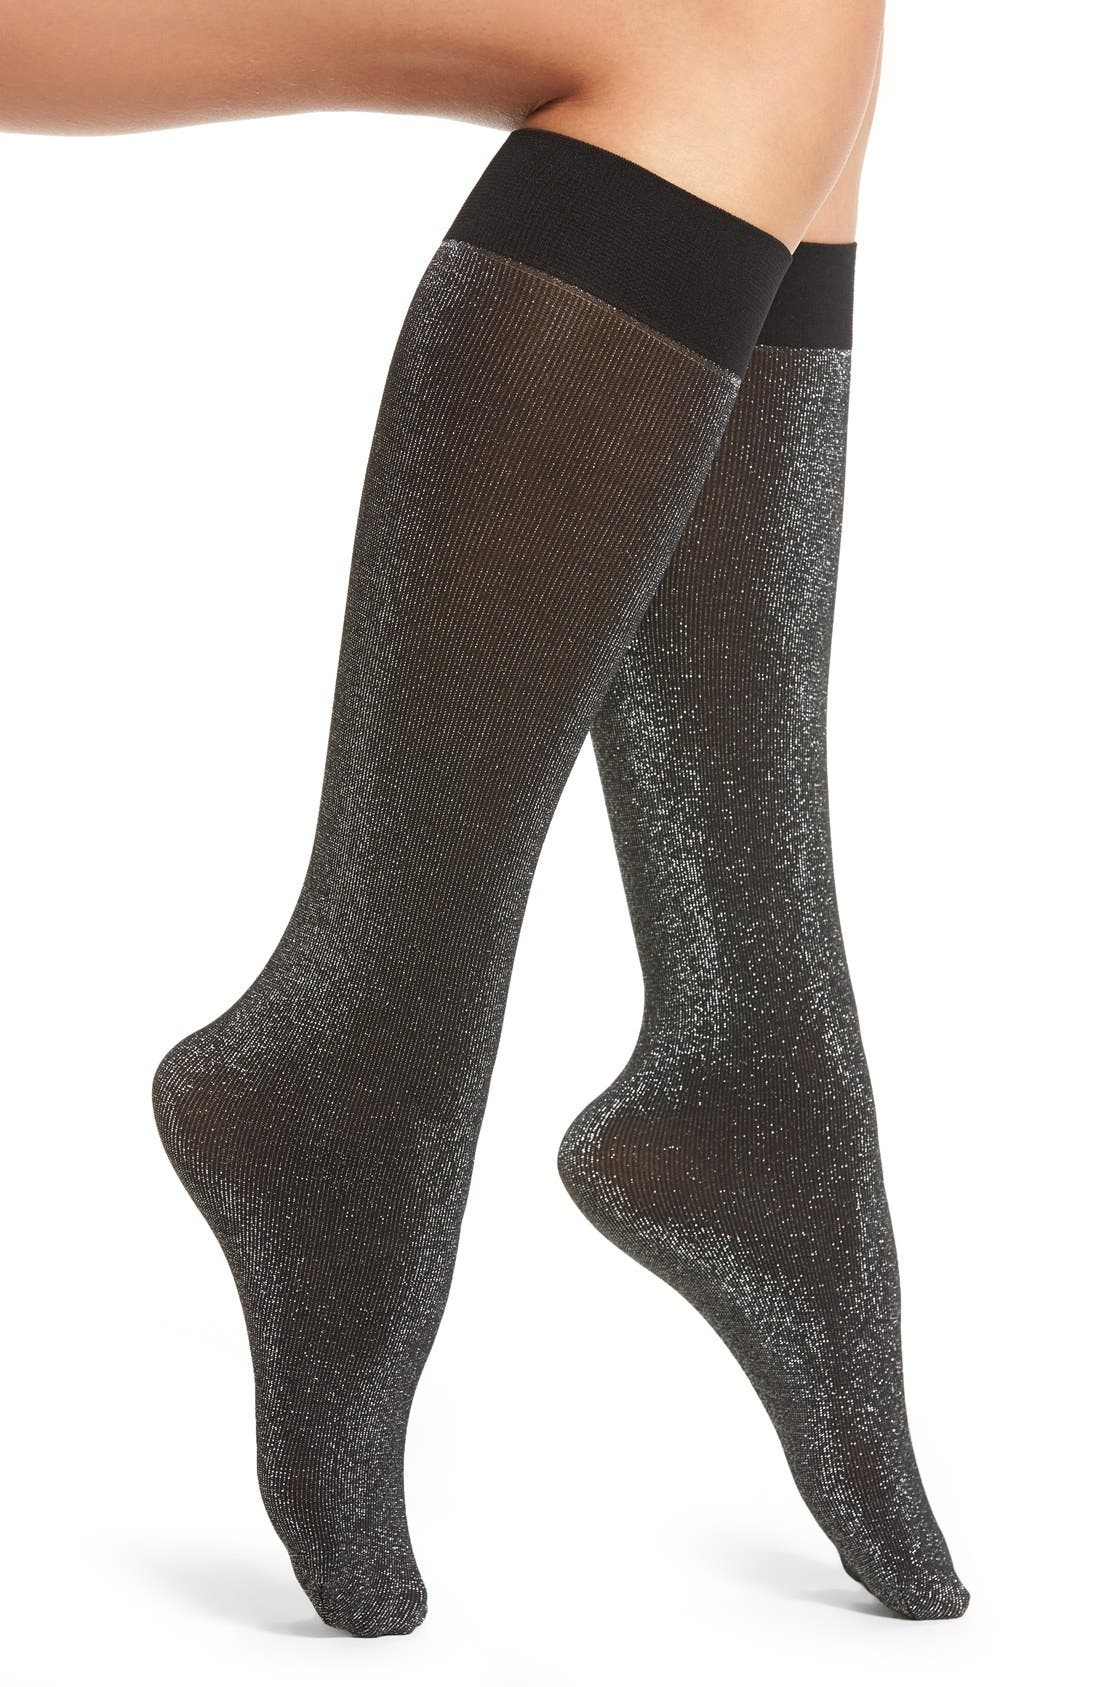 Shimmer Knee Socks,                             Main thumbnail 1, color,                             001